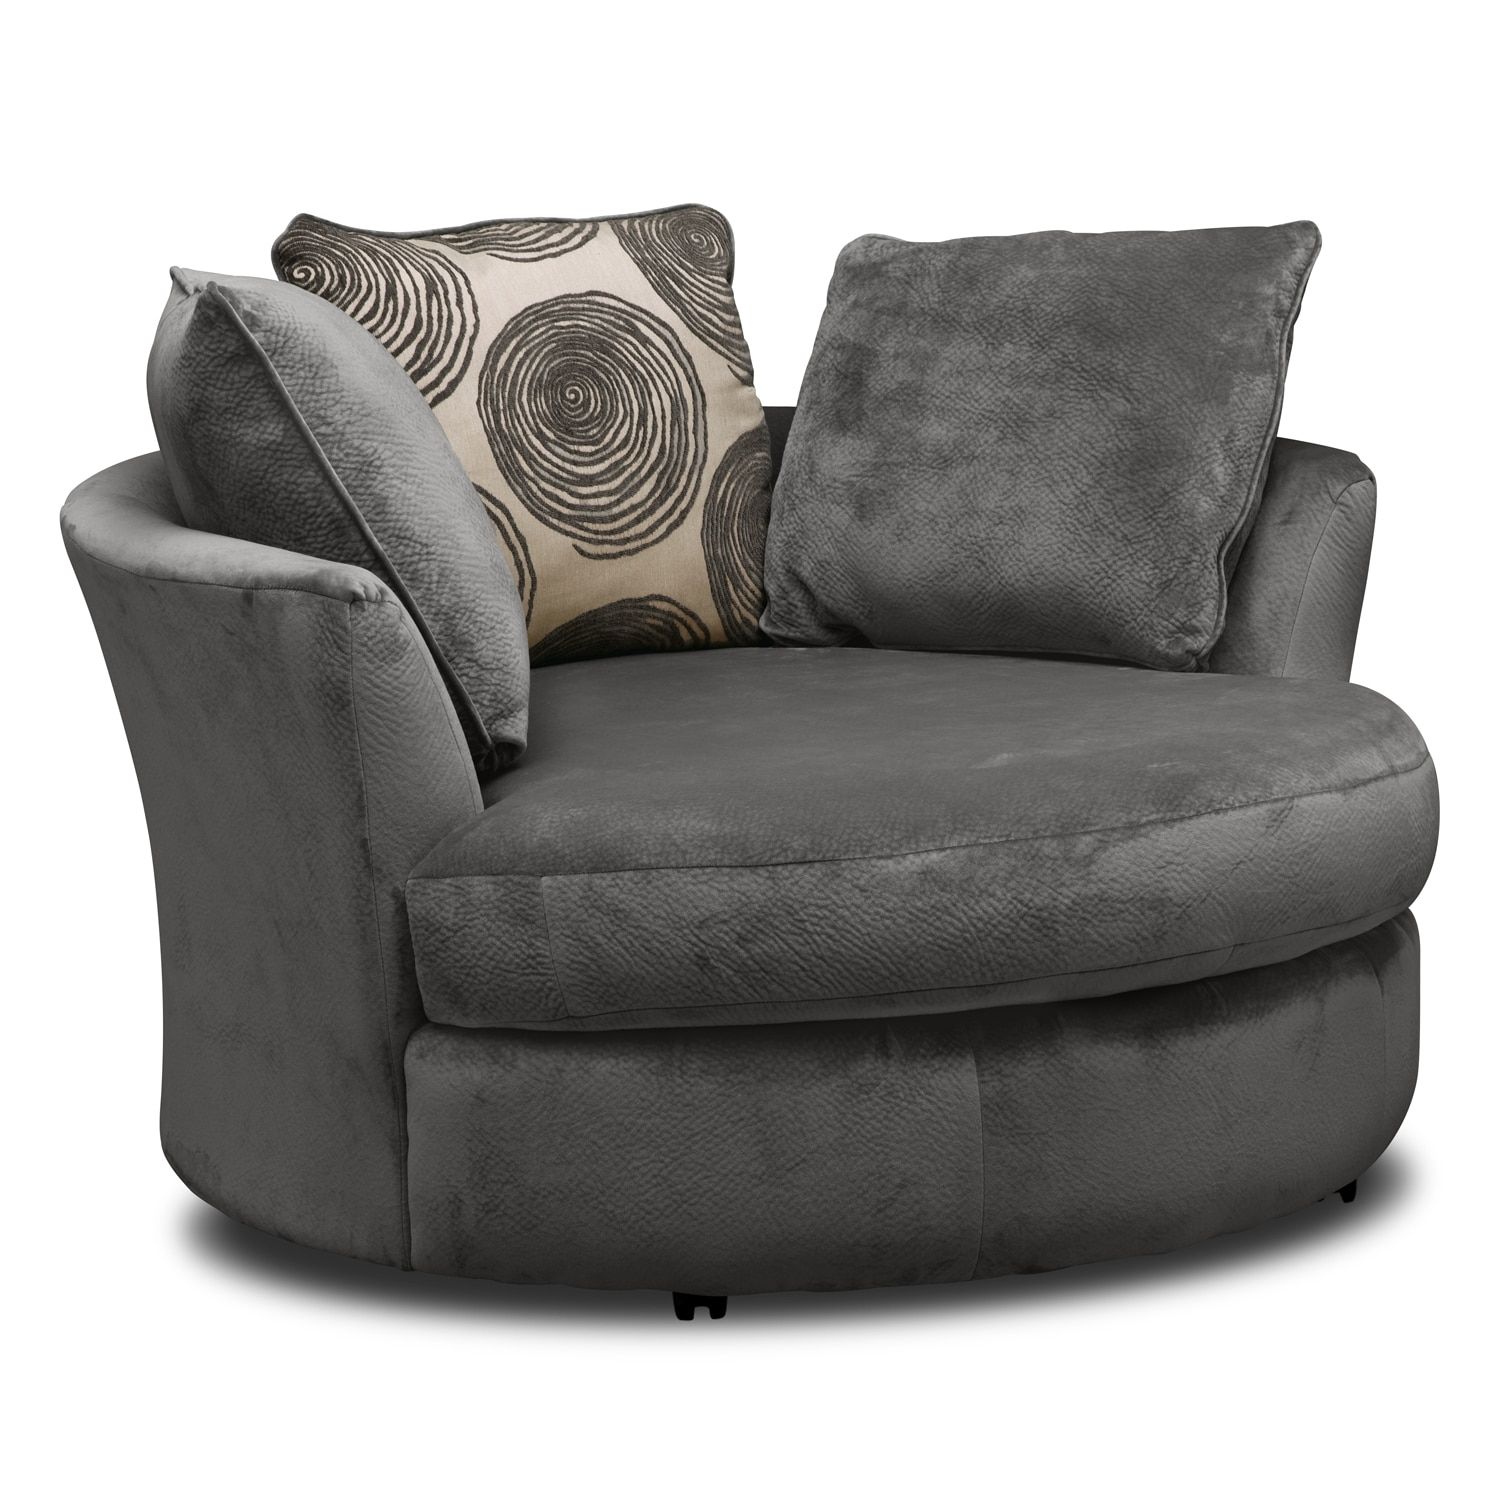 Featured Image of Sofa With Swivel Chair